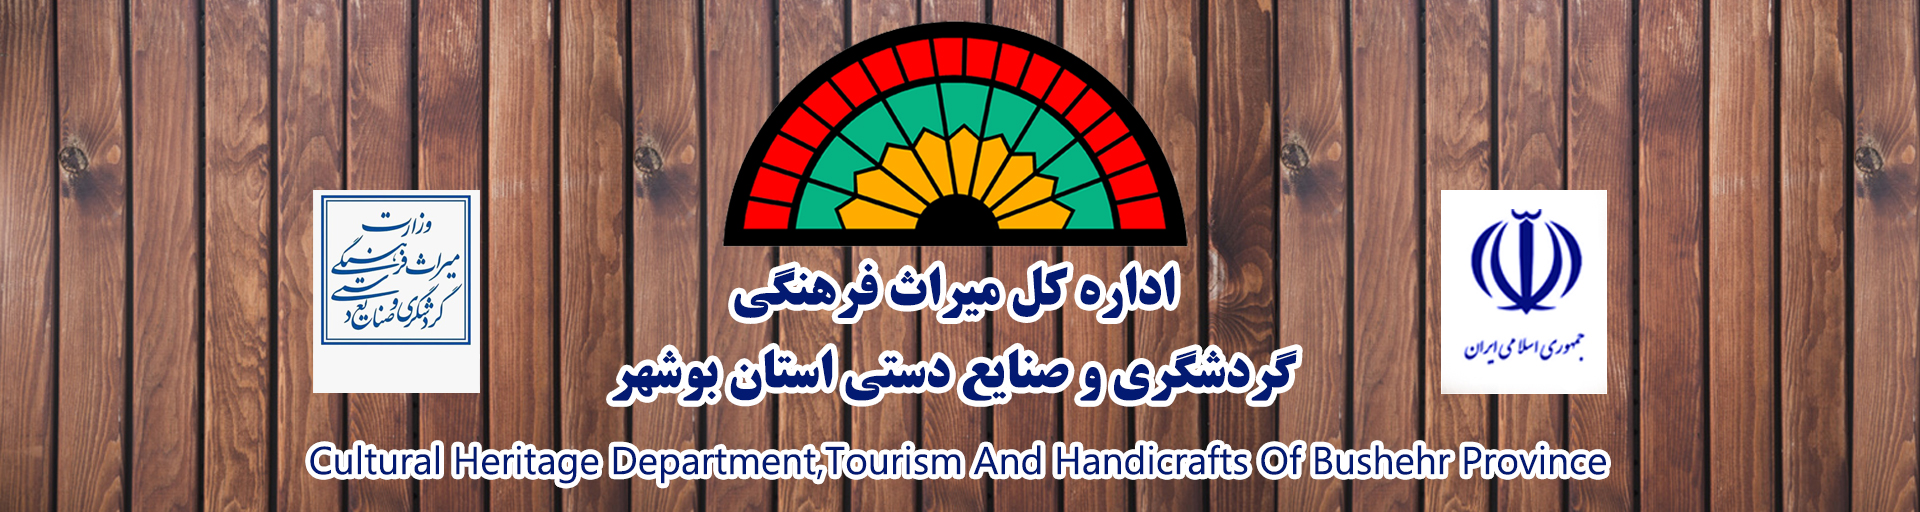 Bureau of Cultural Heritage, Handicrafts and Tourism of Bushehr Province